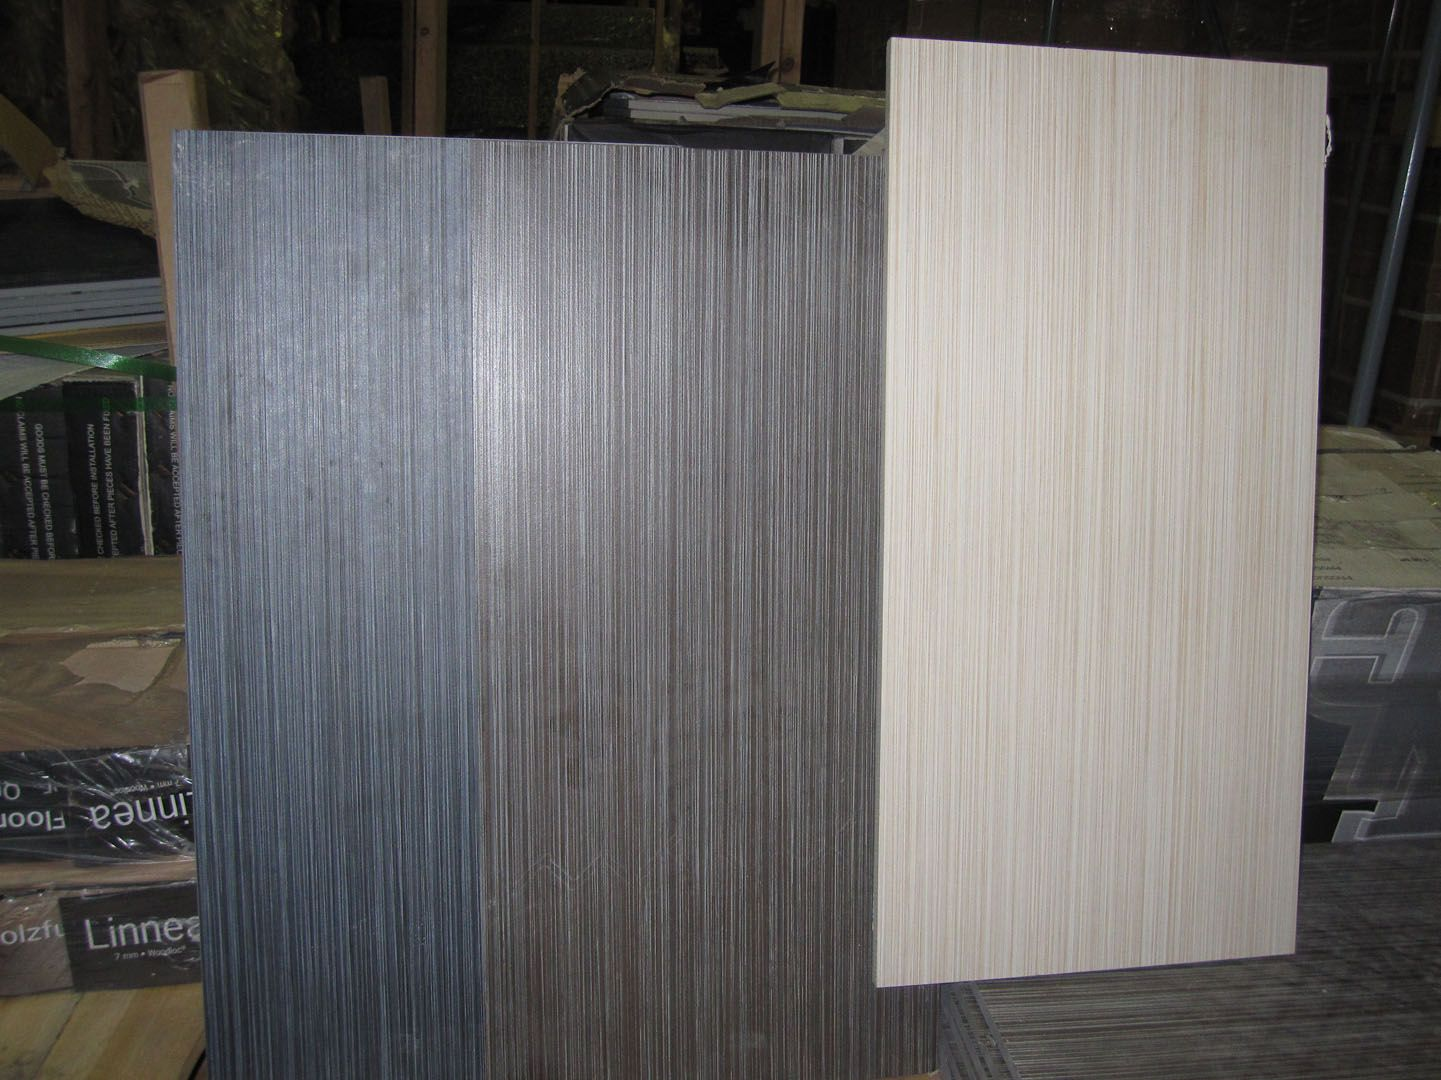 Different bathroom tiles - Dark Grey And Blue Linear Tile For Bathroom Floor Will Be And Accent Tile In Different Shapes In Shower